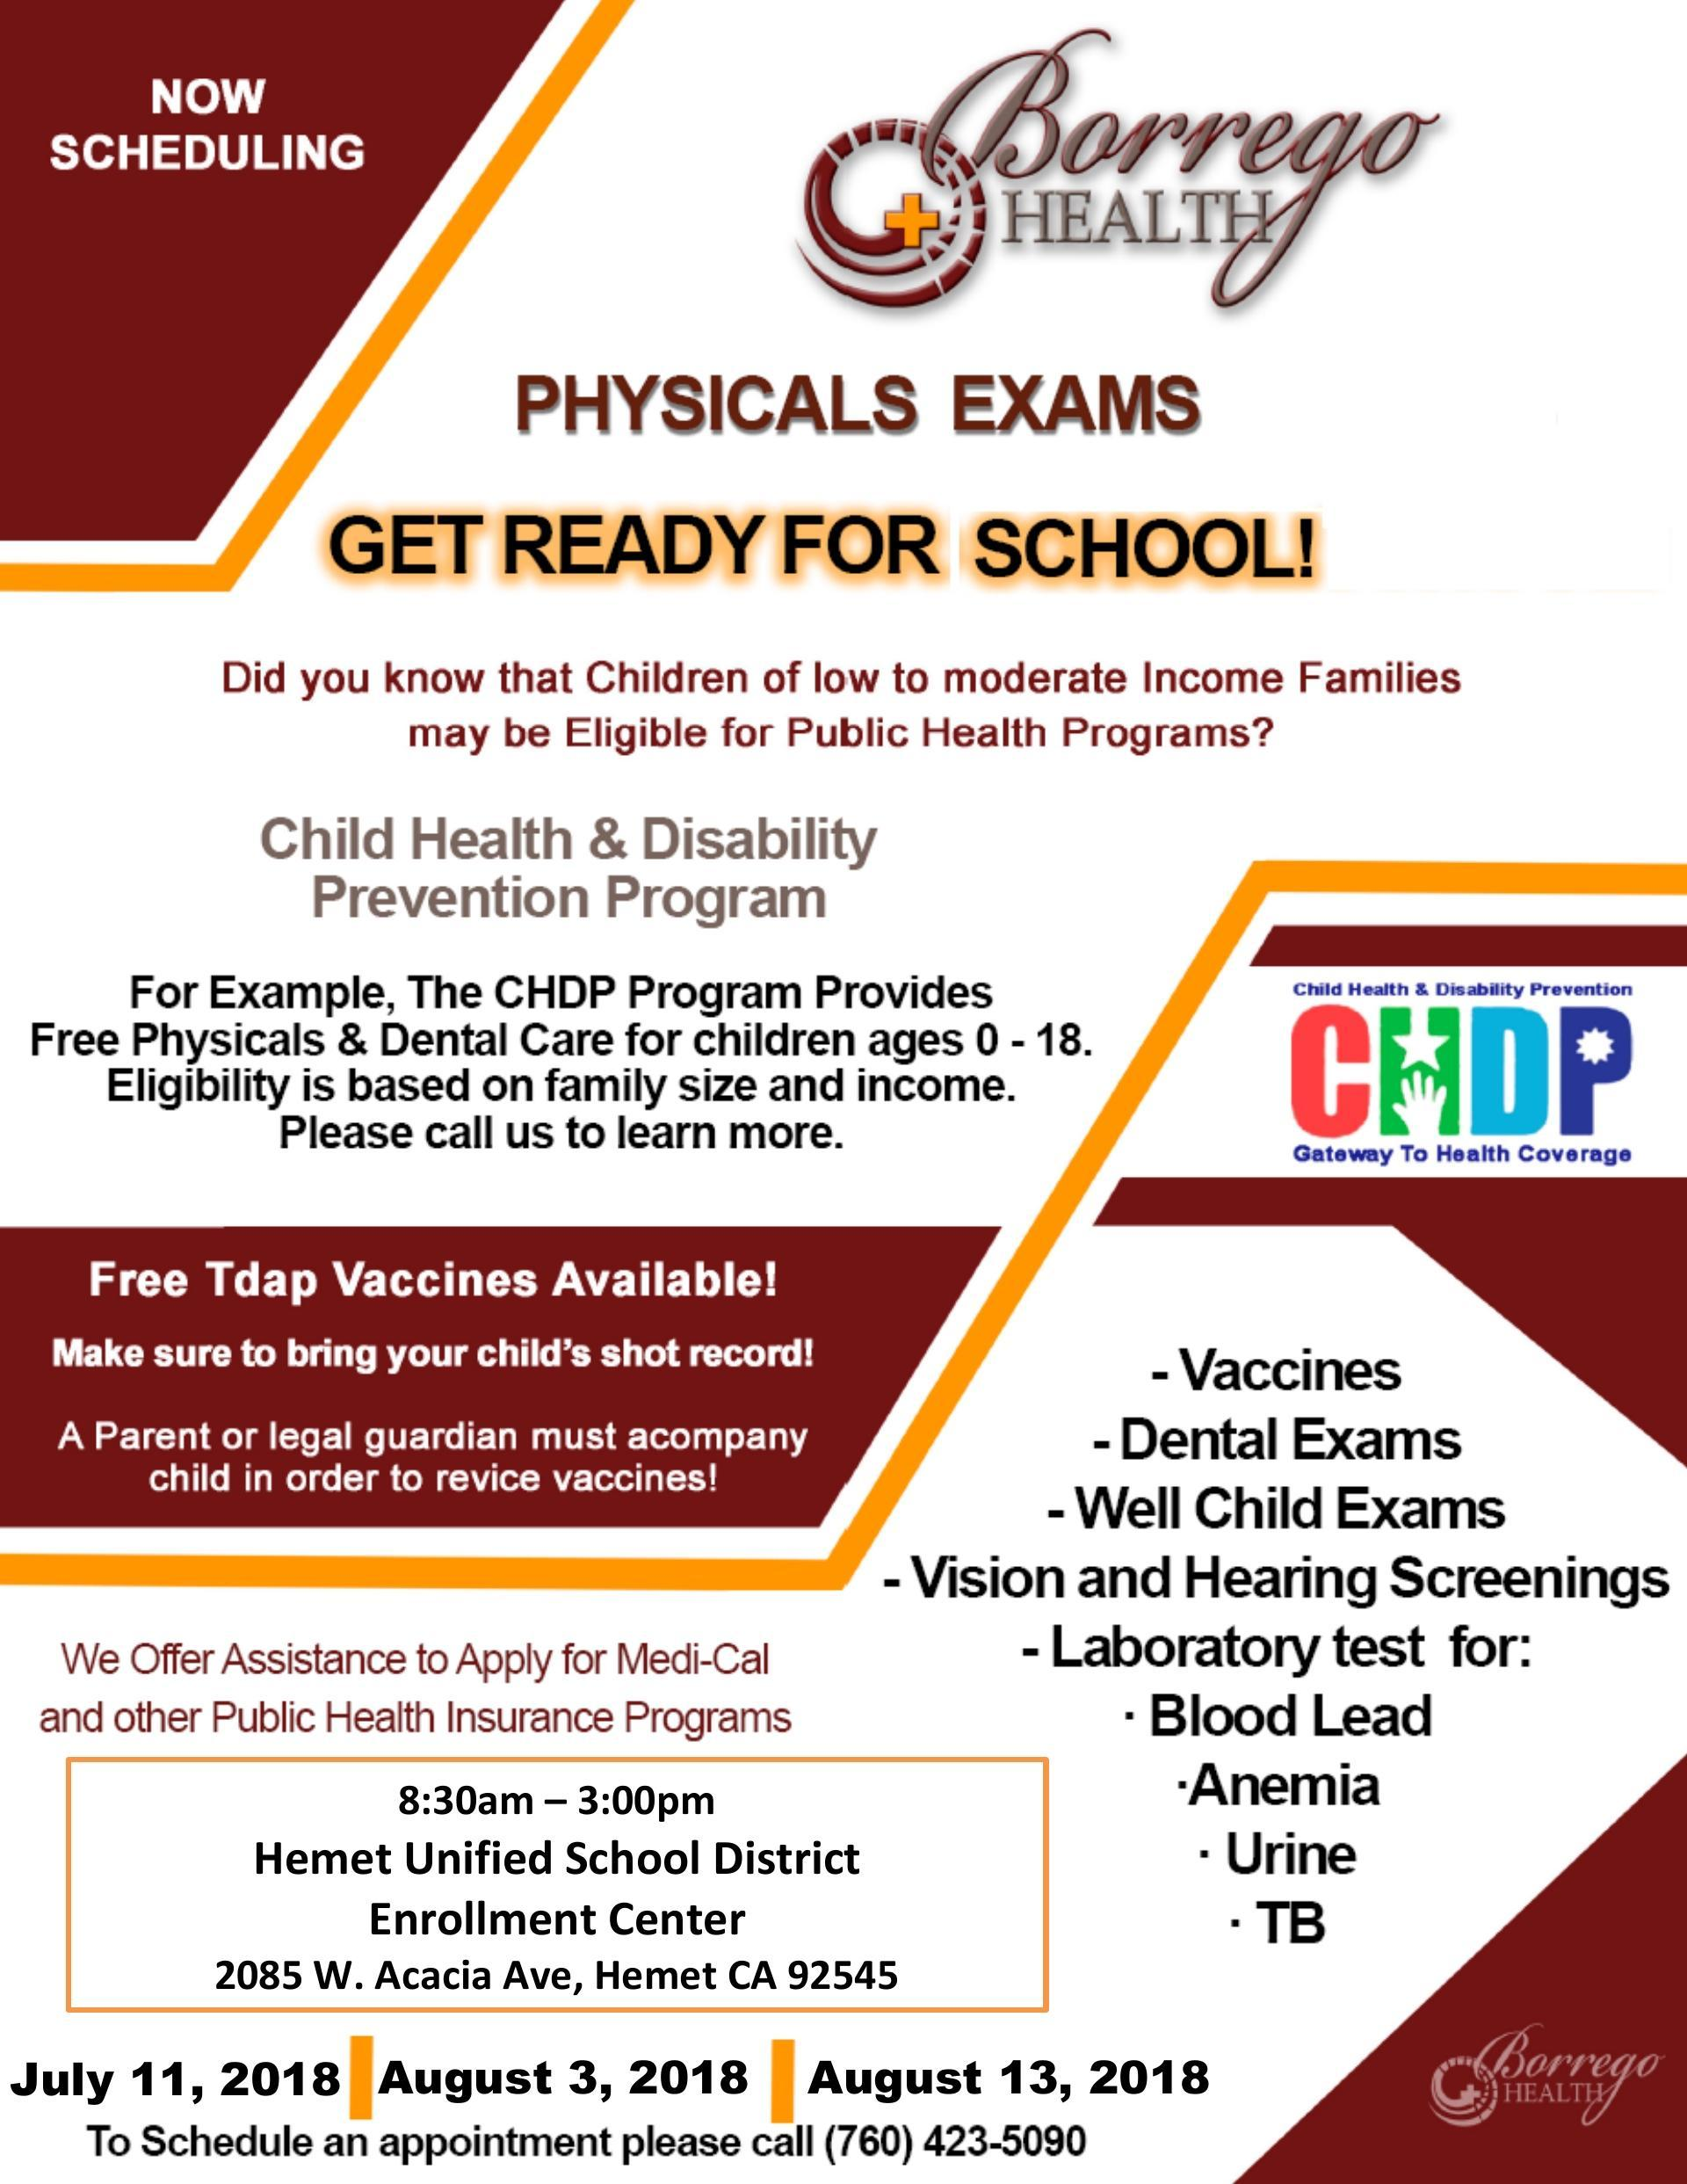 Borrego Health Physical Exams Hemet Unified School District Enrollment Center July 11th, August 3rd, and August 13th from 8:30 am to 3 pm